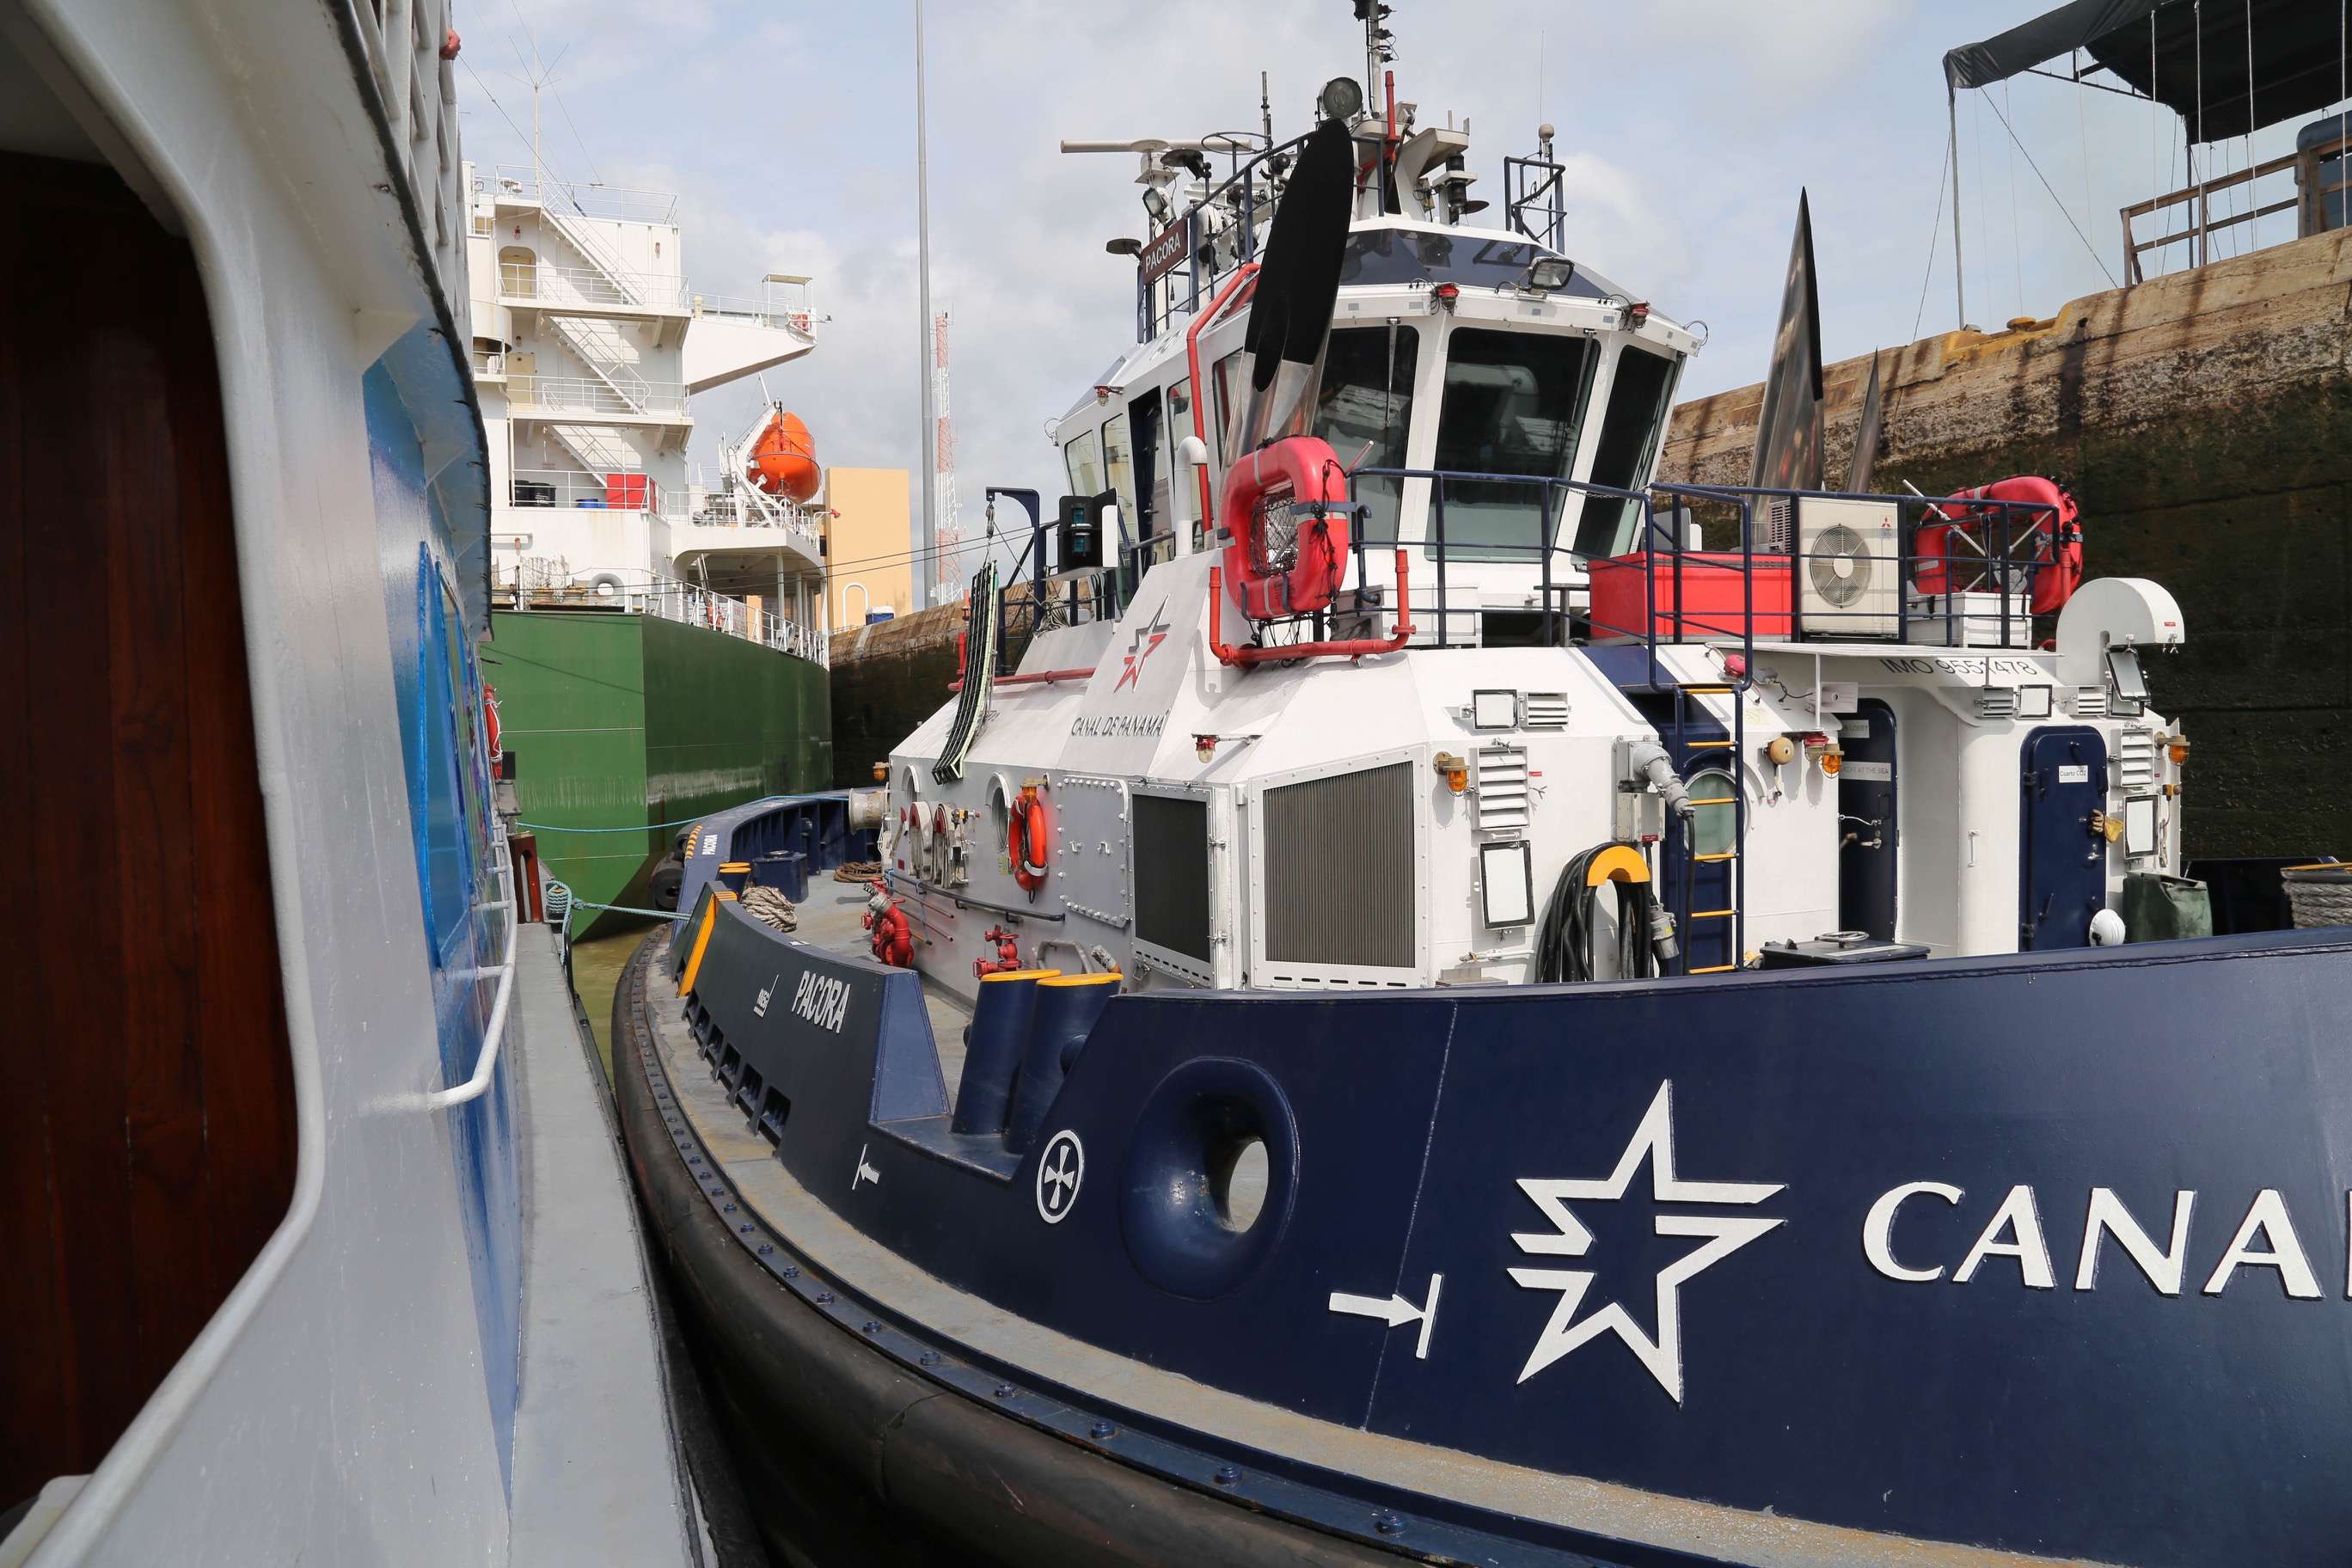 The locks are huge upon approach, but canal personnel don't want to waste water so as many ships and boats as possible are tucked in.